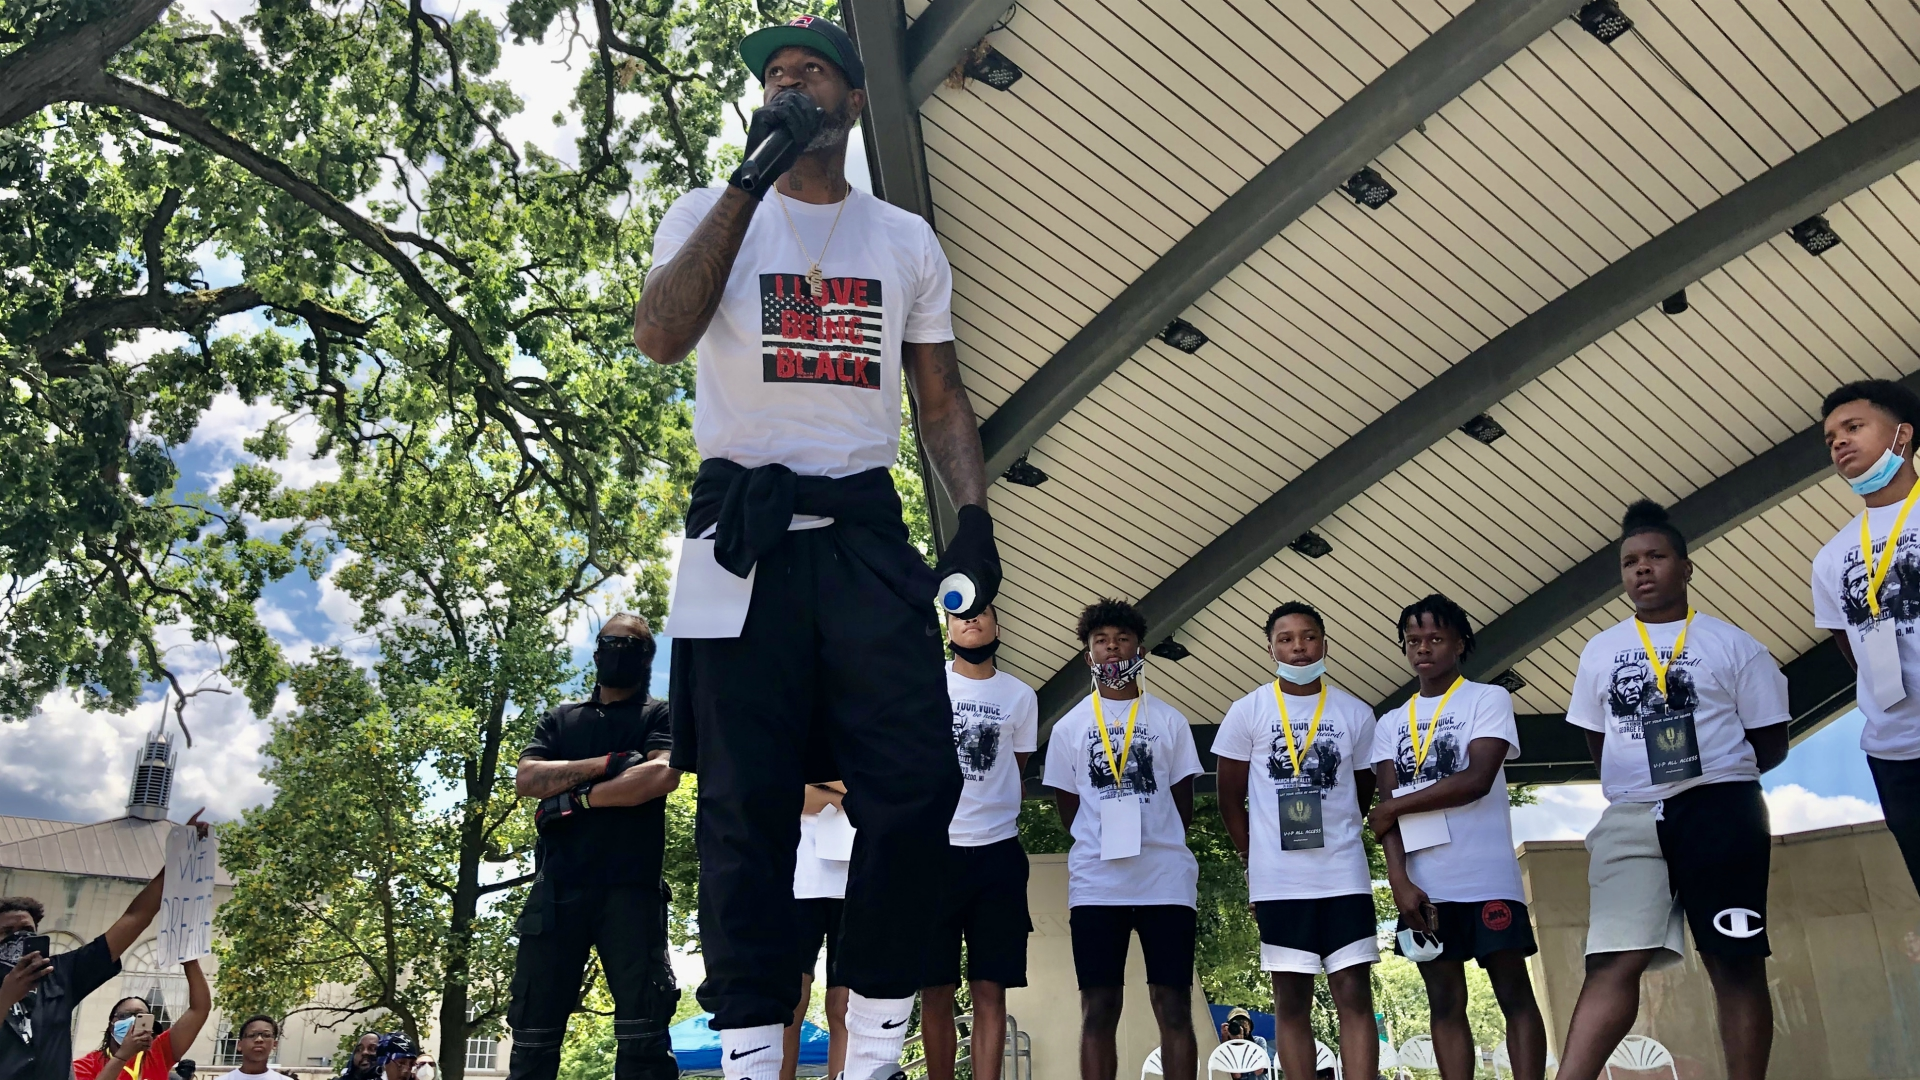 Former NBA star Stephen Jackson at a rally in Kalamazoo in honor of George Floyd on July 11, 2020.